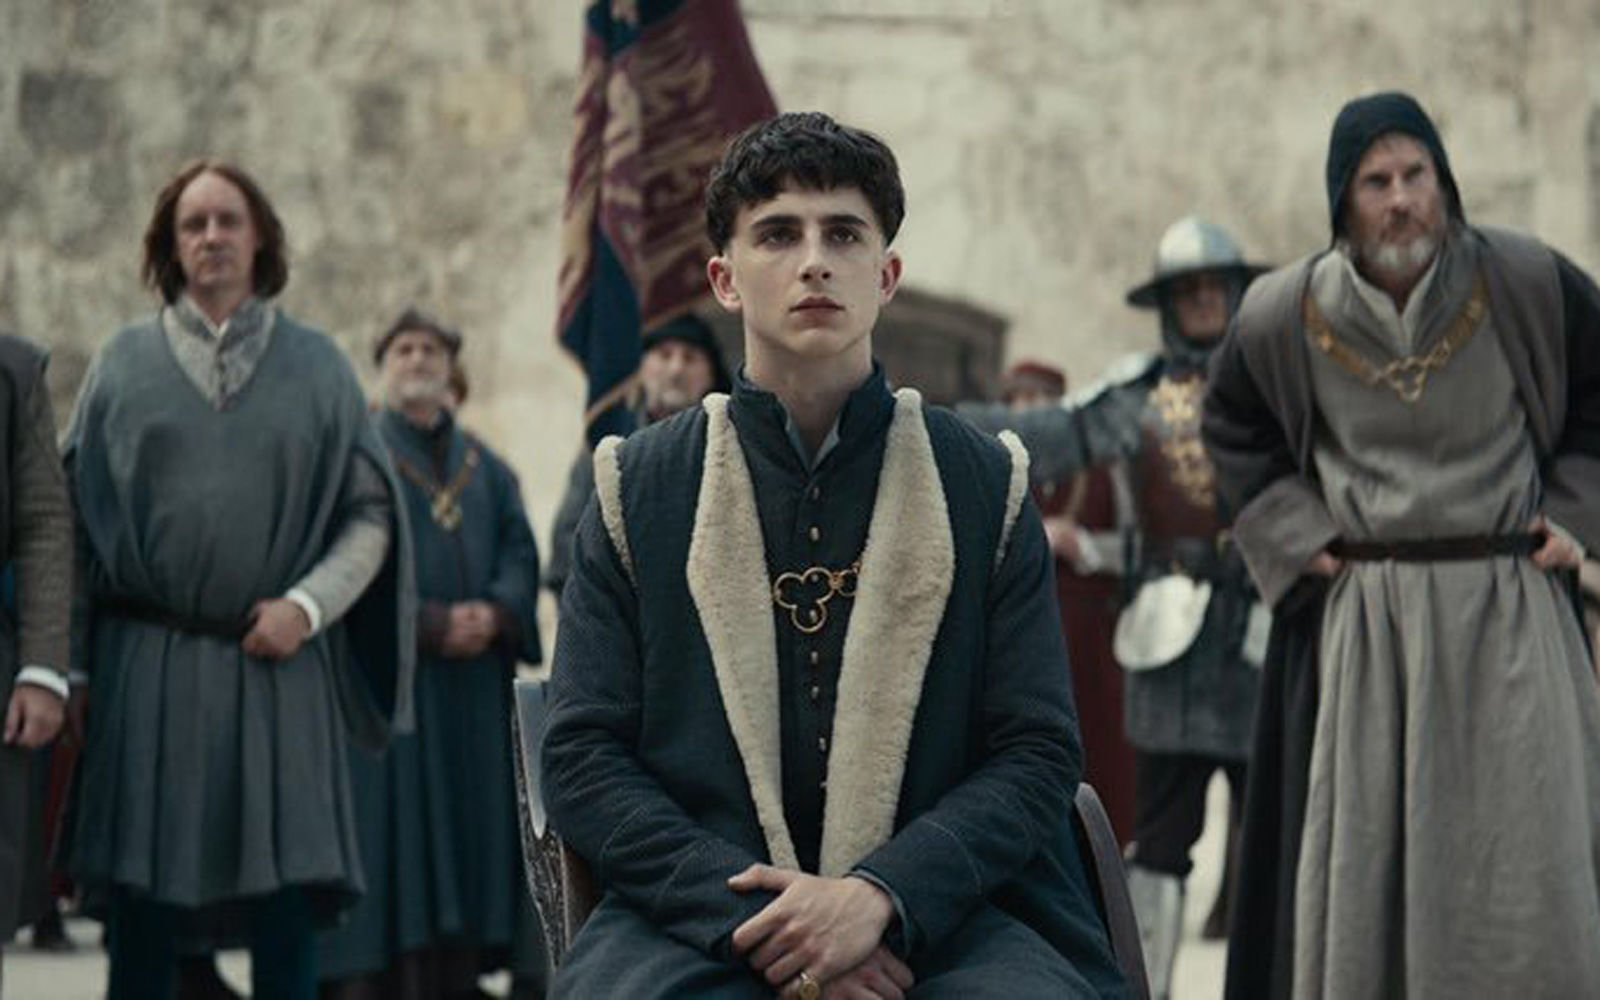 'The King' Review: Timothée Chalamet Rules, But Netflix's Shakespearean Epic Is No Crowning Achievement